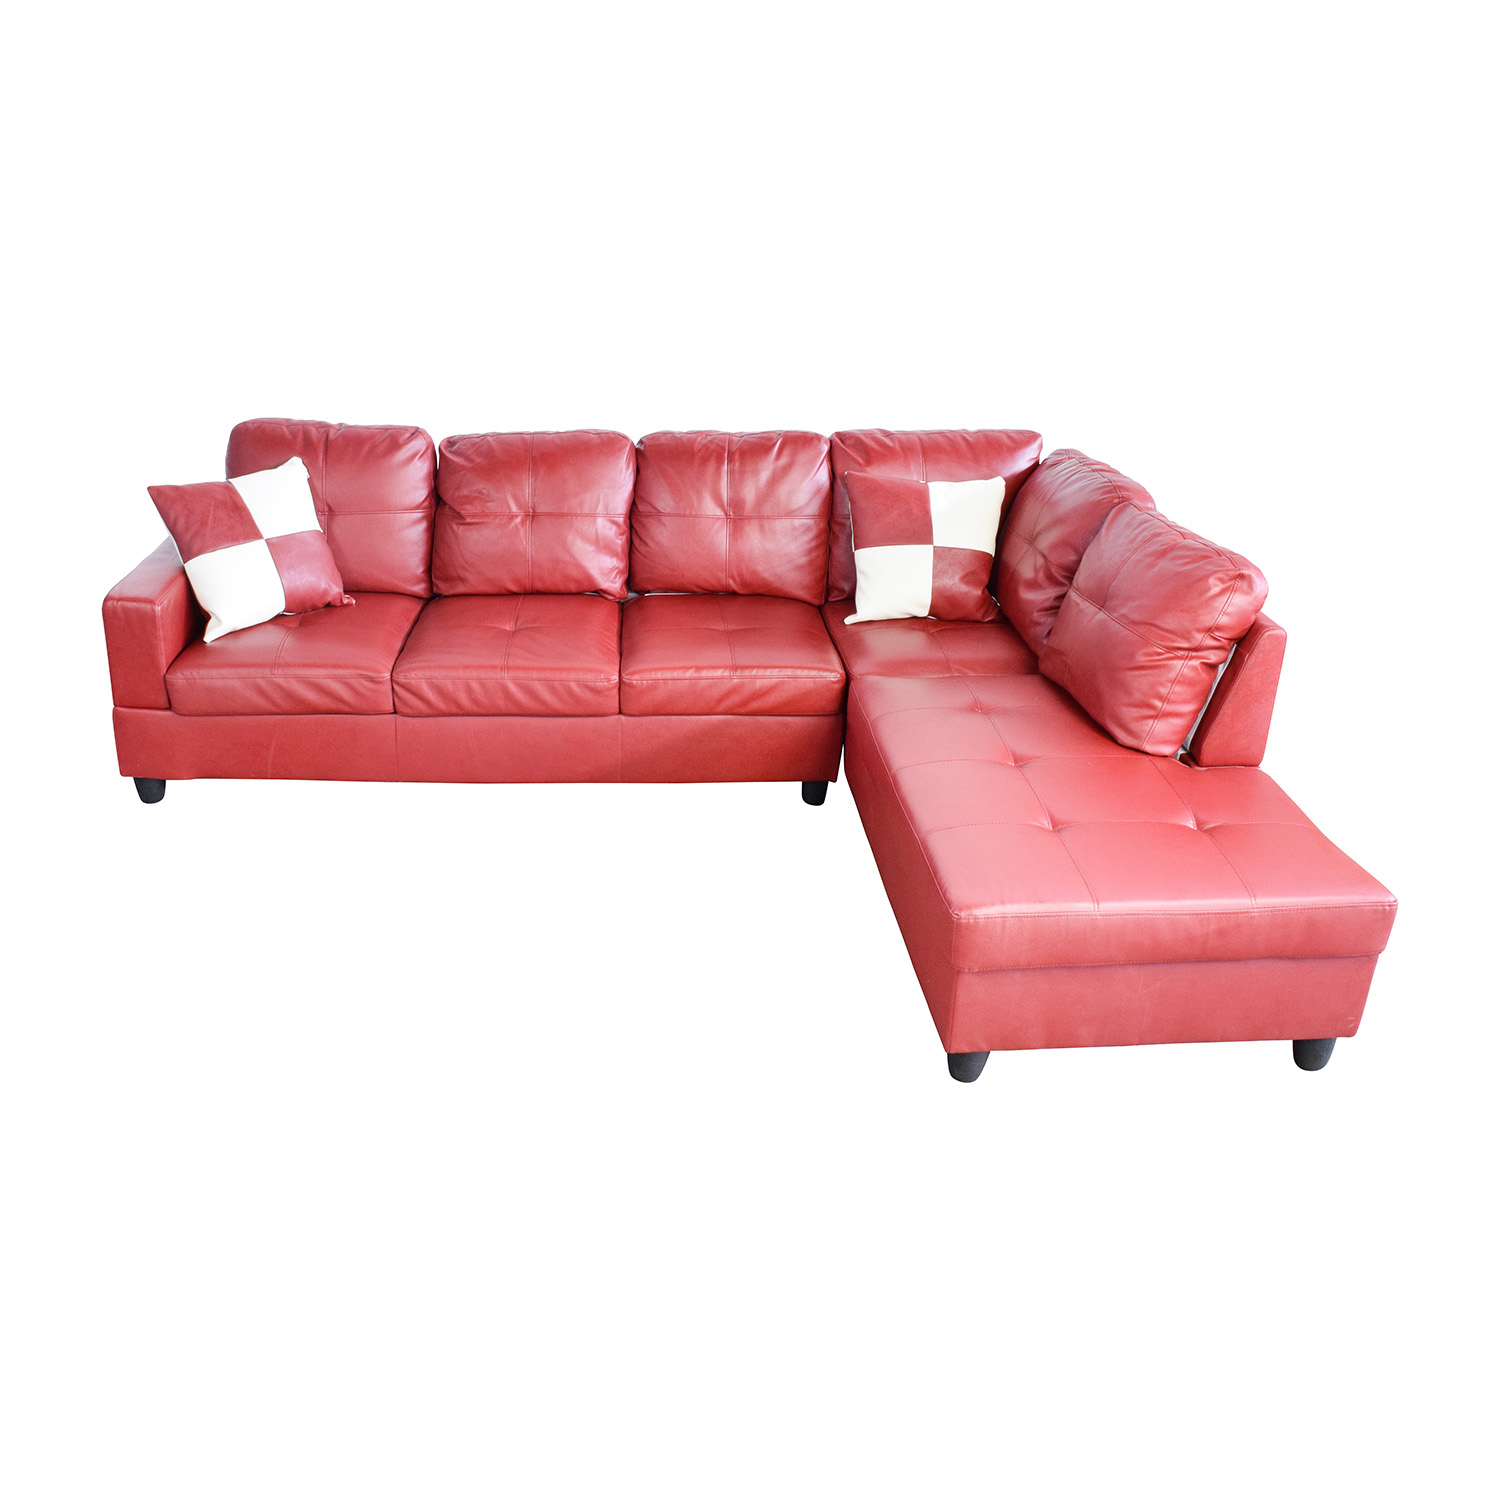 Beverly Furniture Beverly Furniture Red Faux Leather Sectional on sale